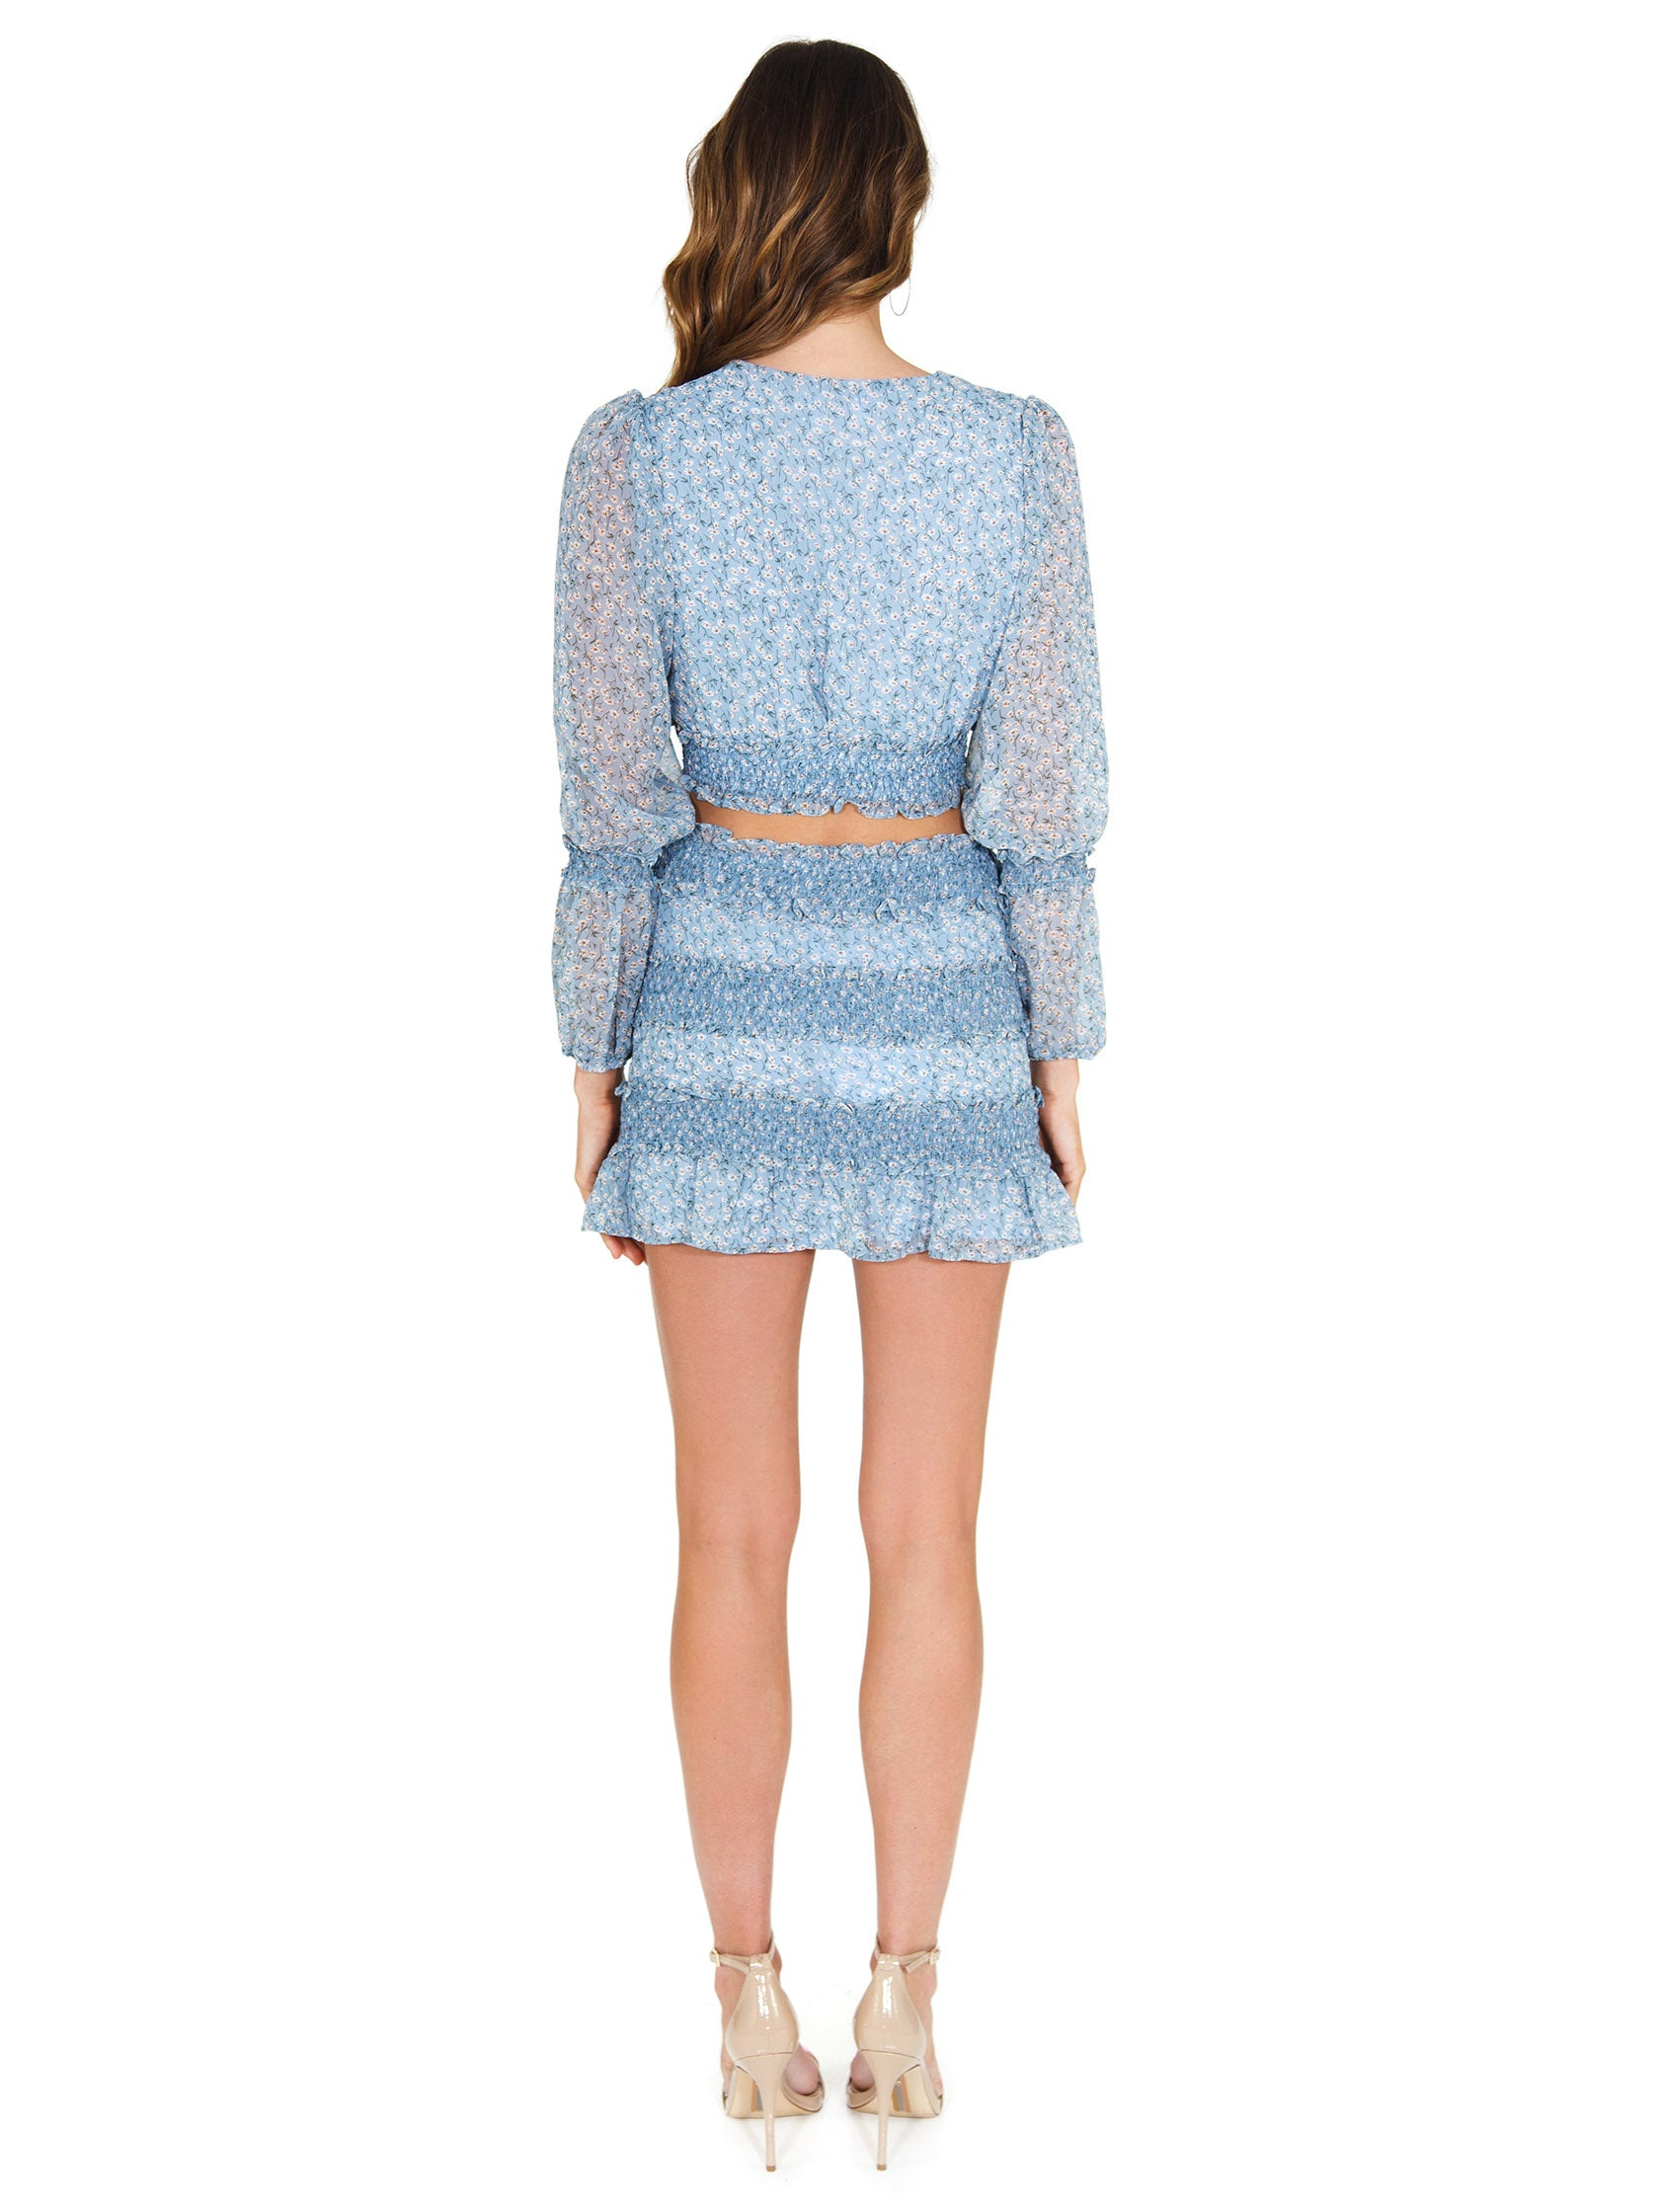 Women outfit in a two piece rental from FashionPass called Sweet Caroline Two-piece Set